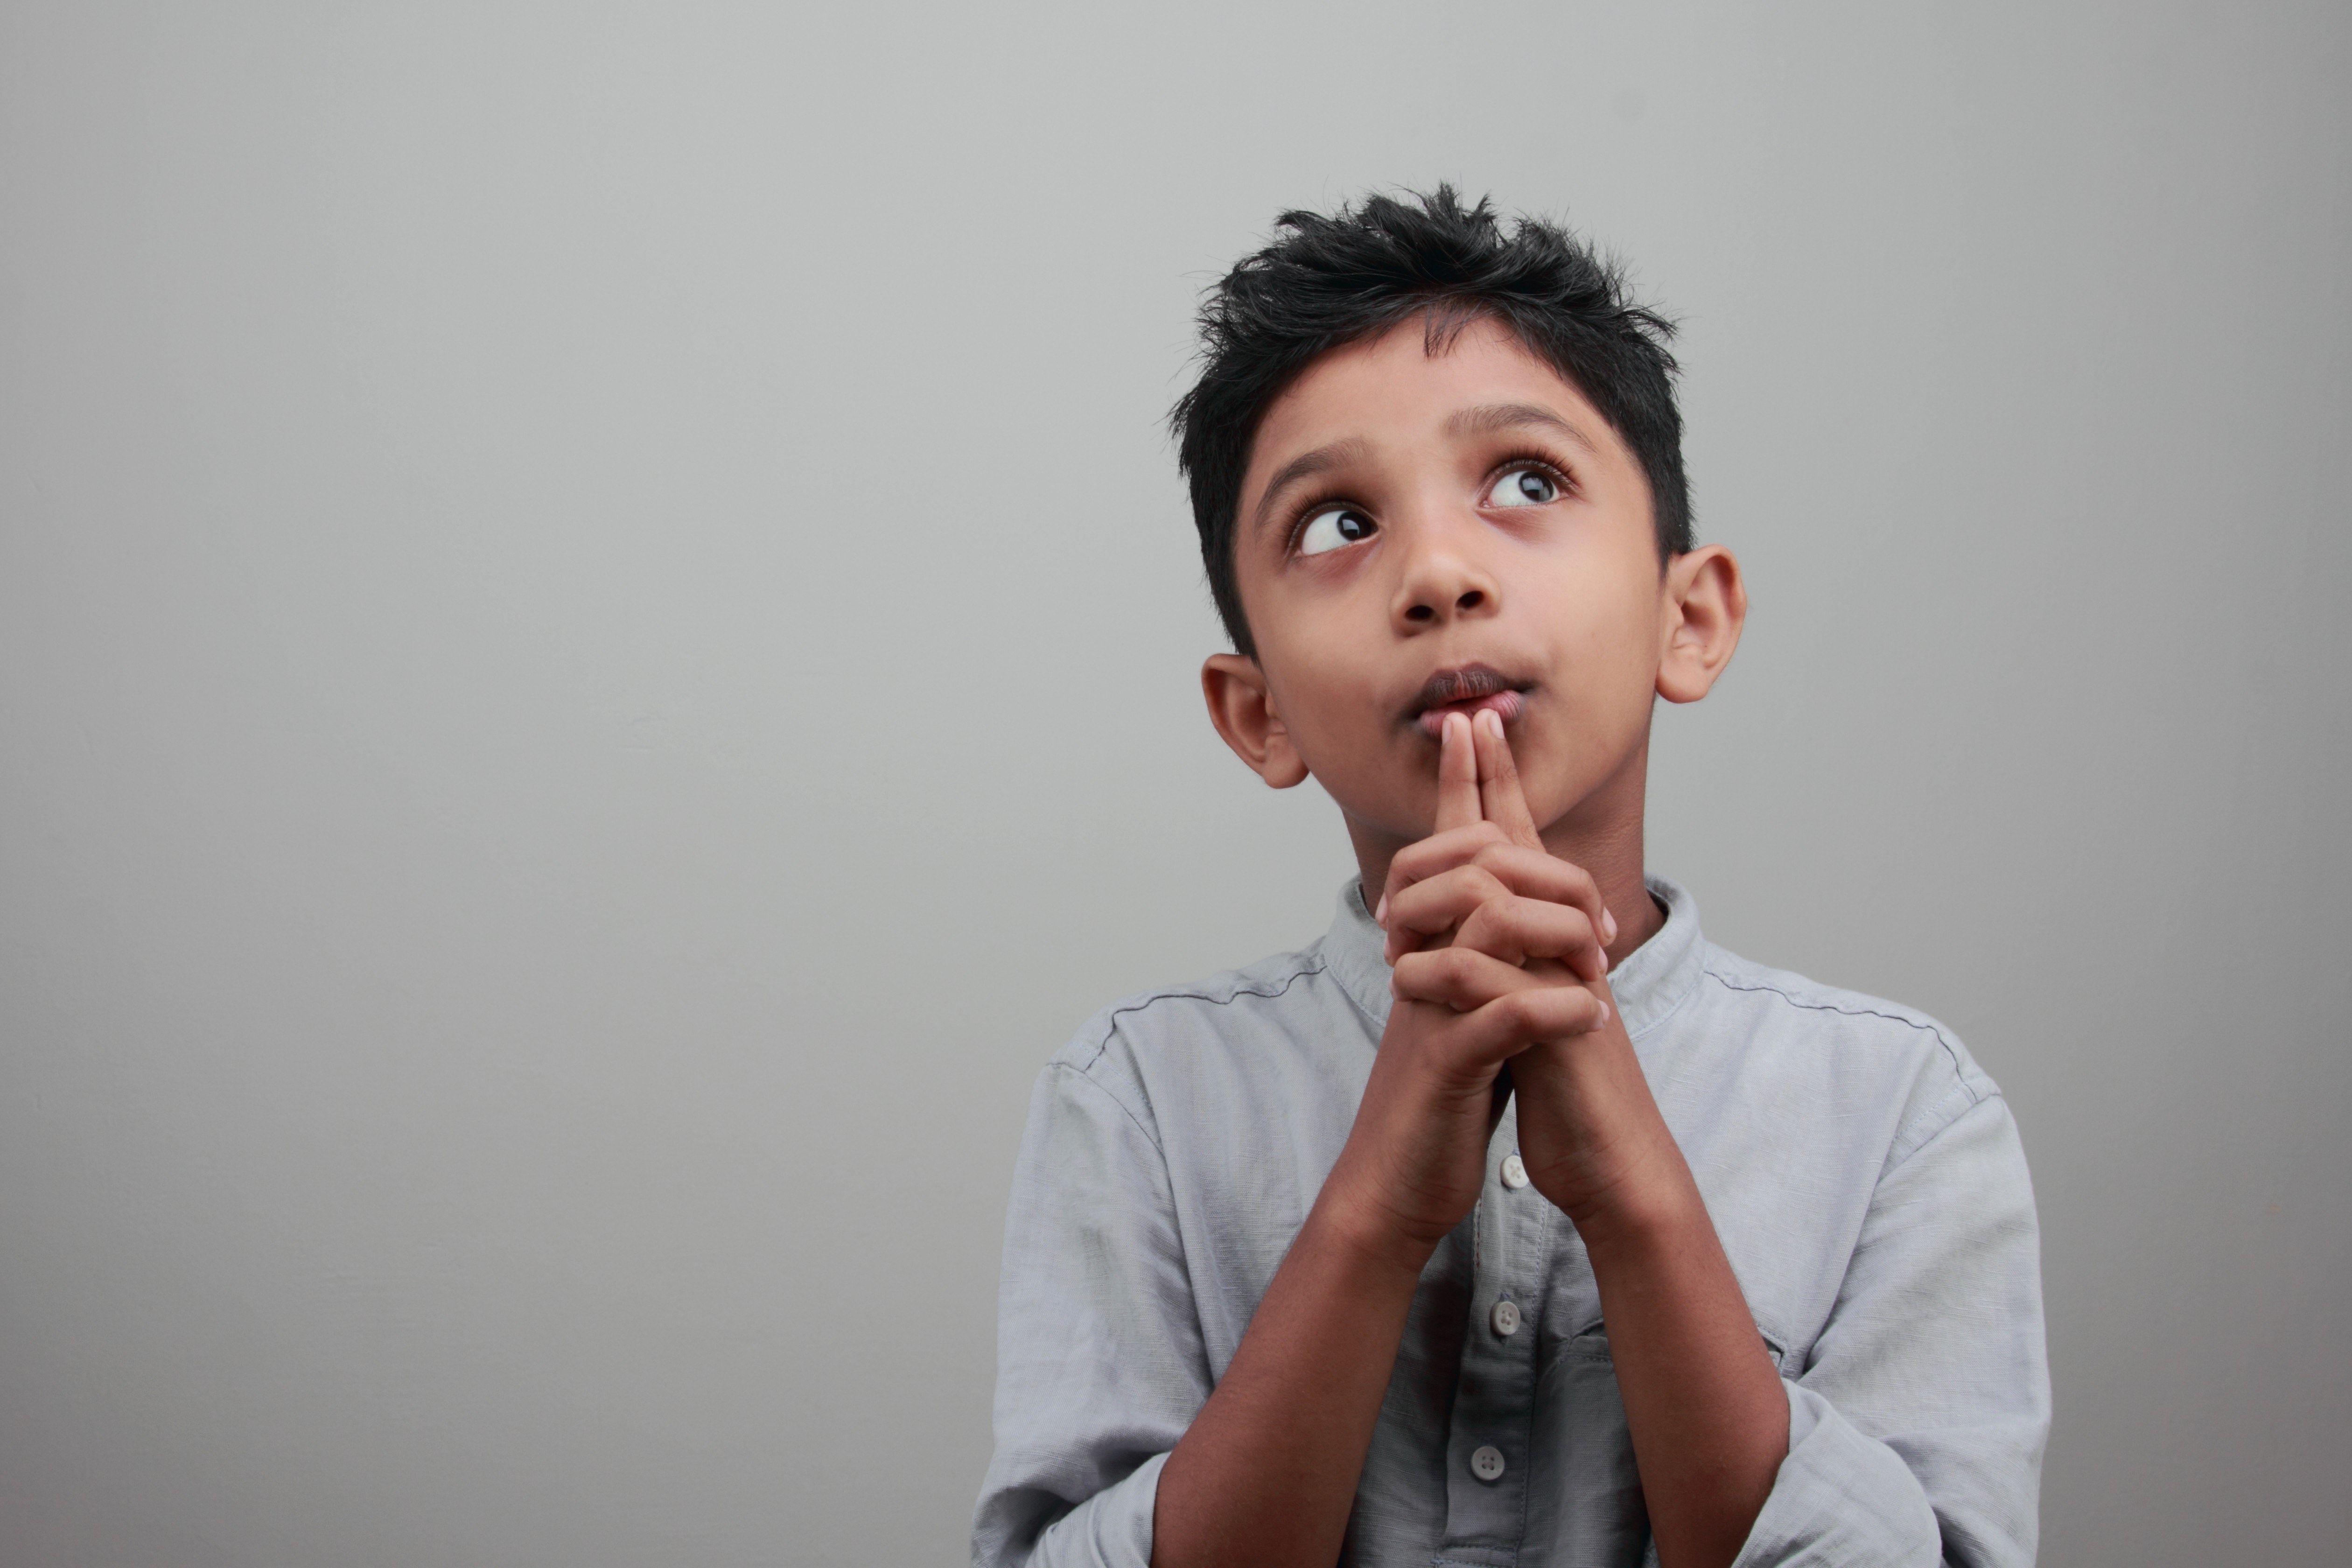 Curious Kids: Why Do I Sometimes Forget What I Was Just Going to Say?